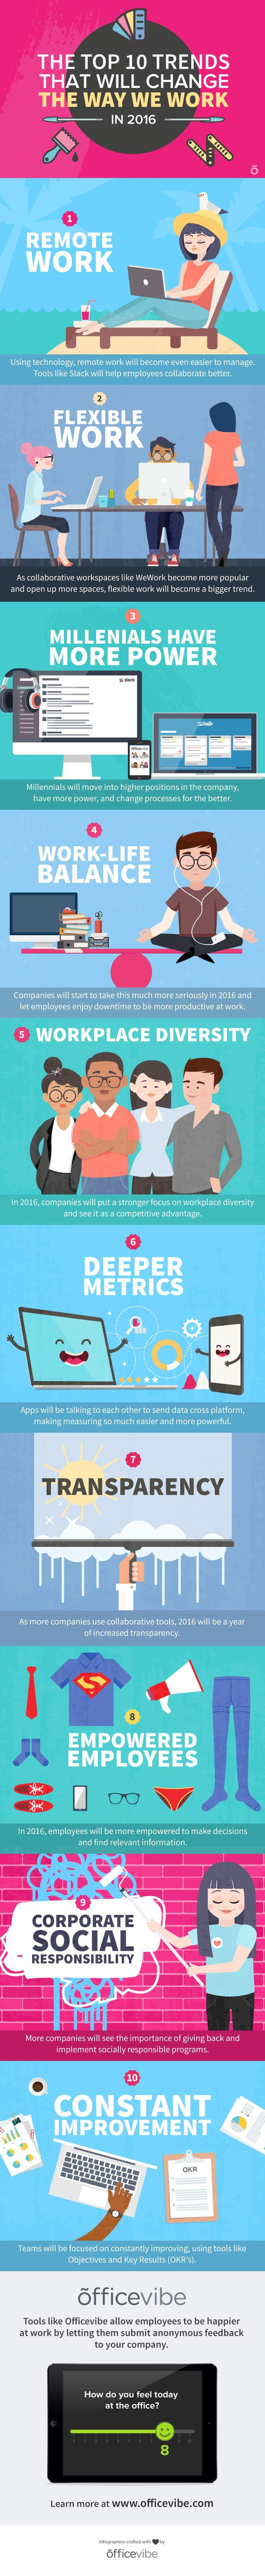 The Top 10 Trends That Will Change The Way We Work in 2016 #Infographic #Trends #Workplace